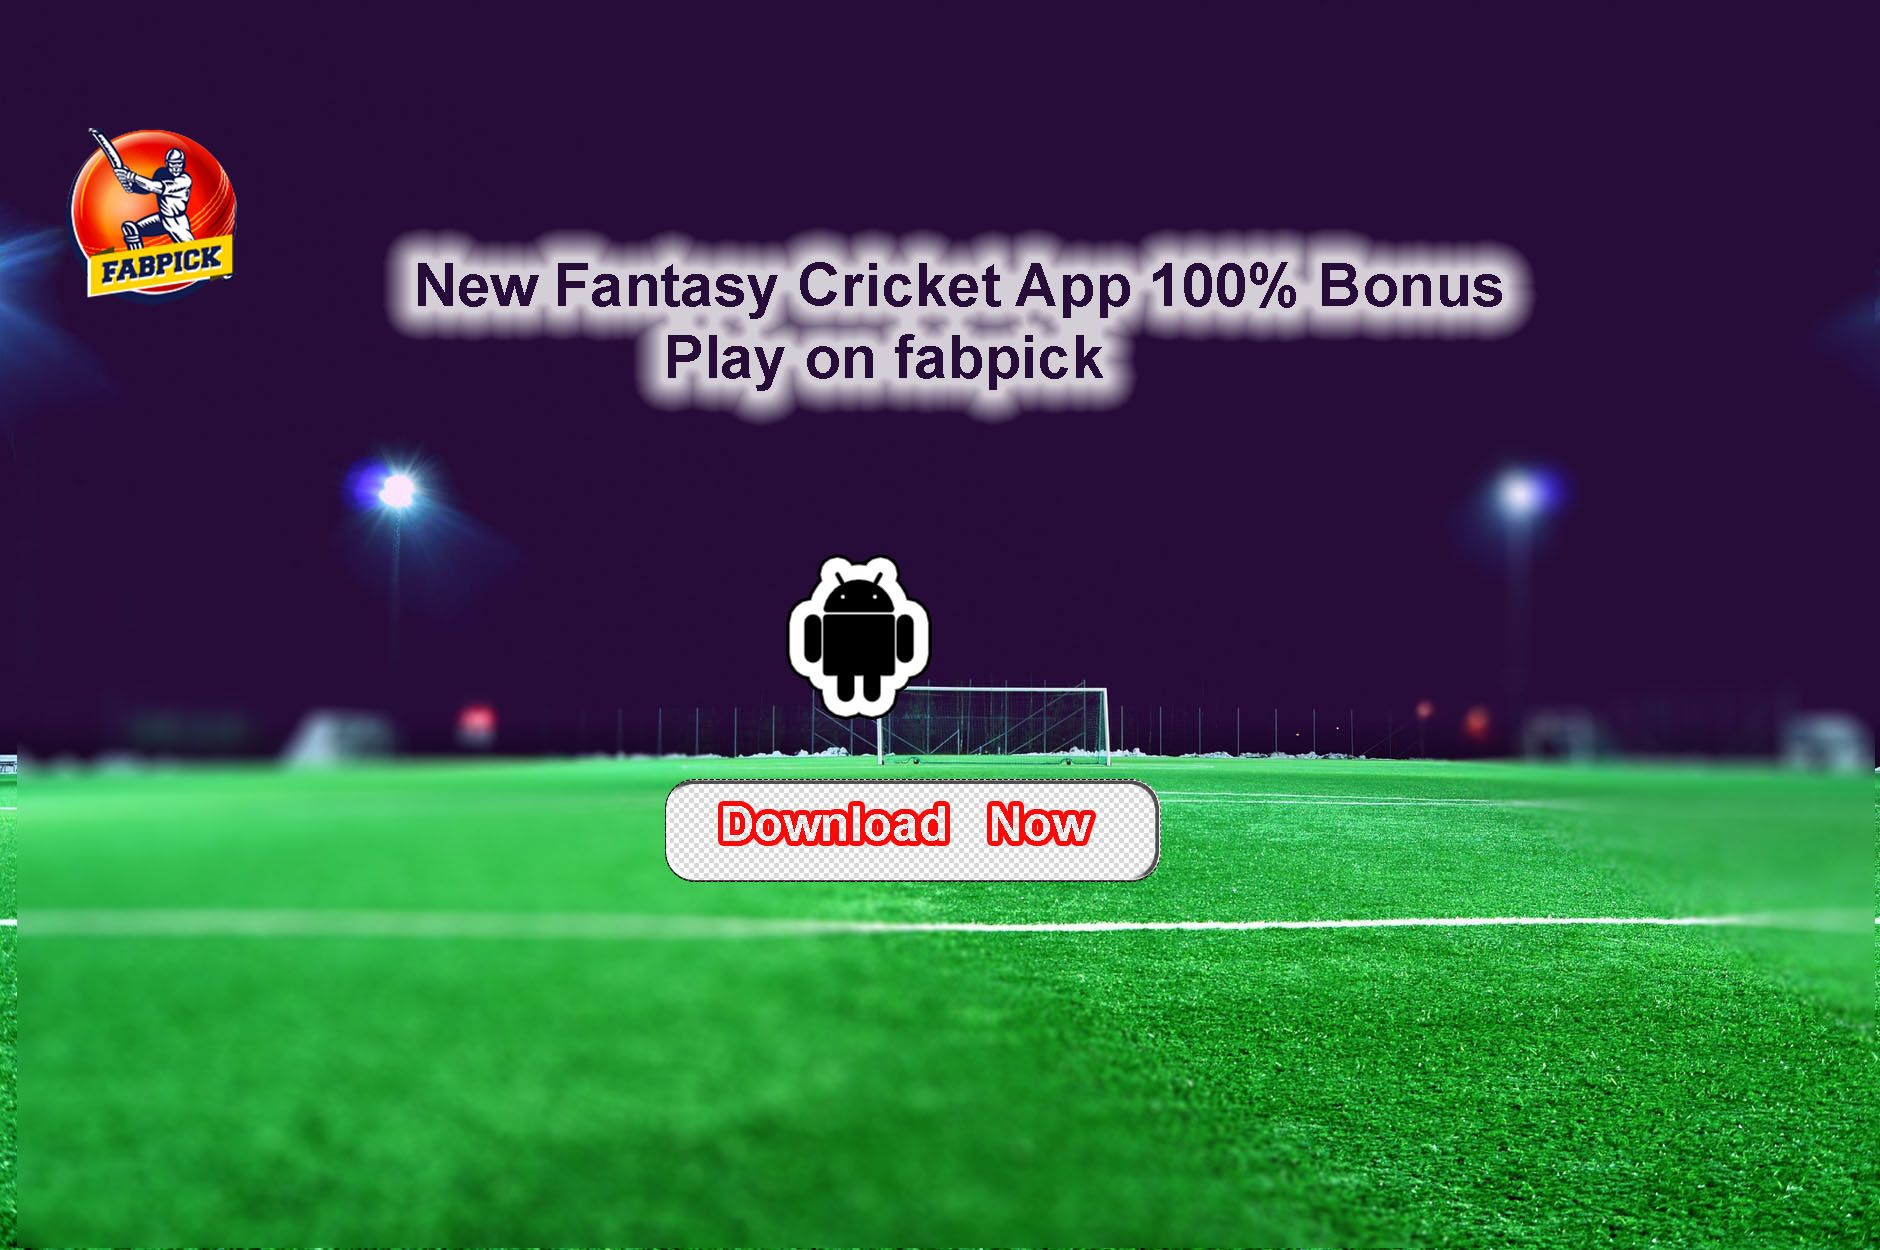 Download your favourite fantasy cricket app which is very cool and